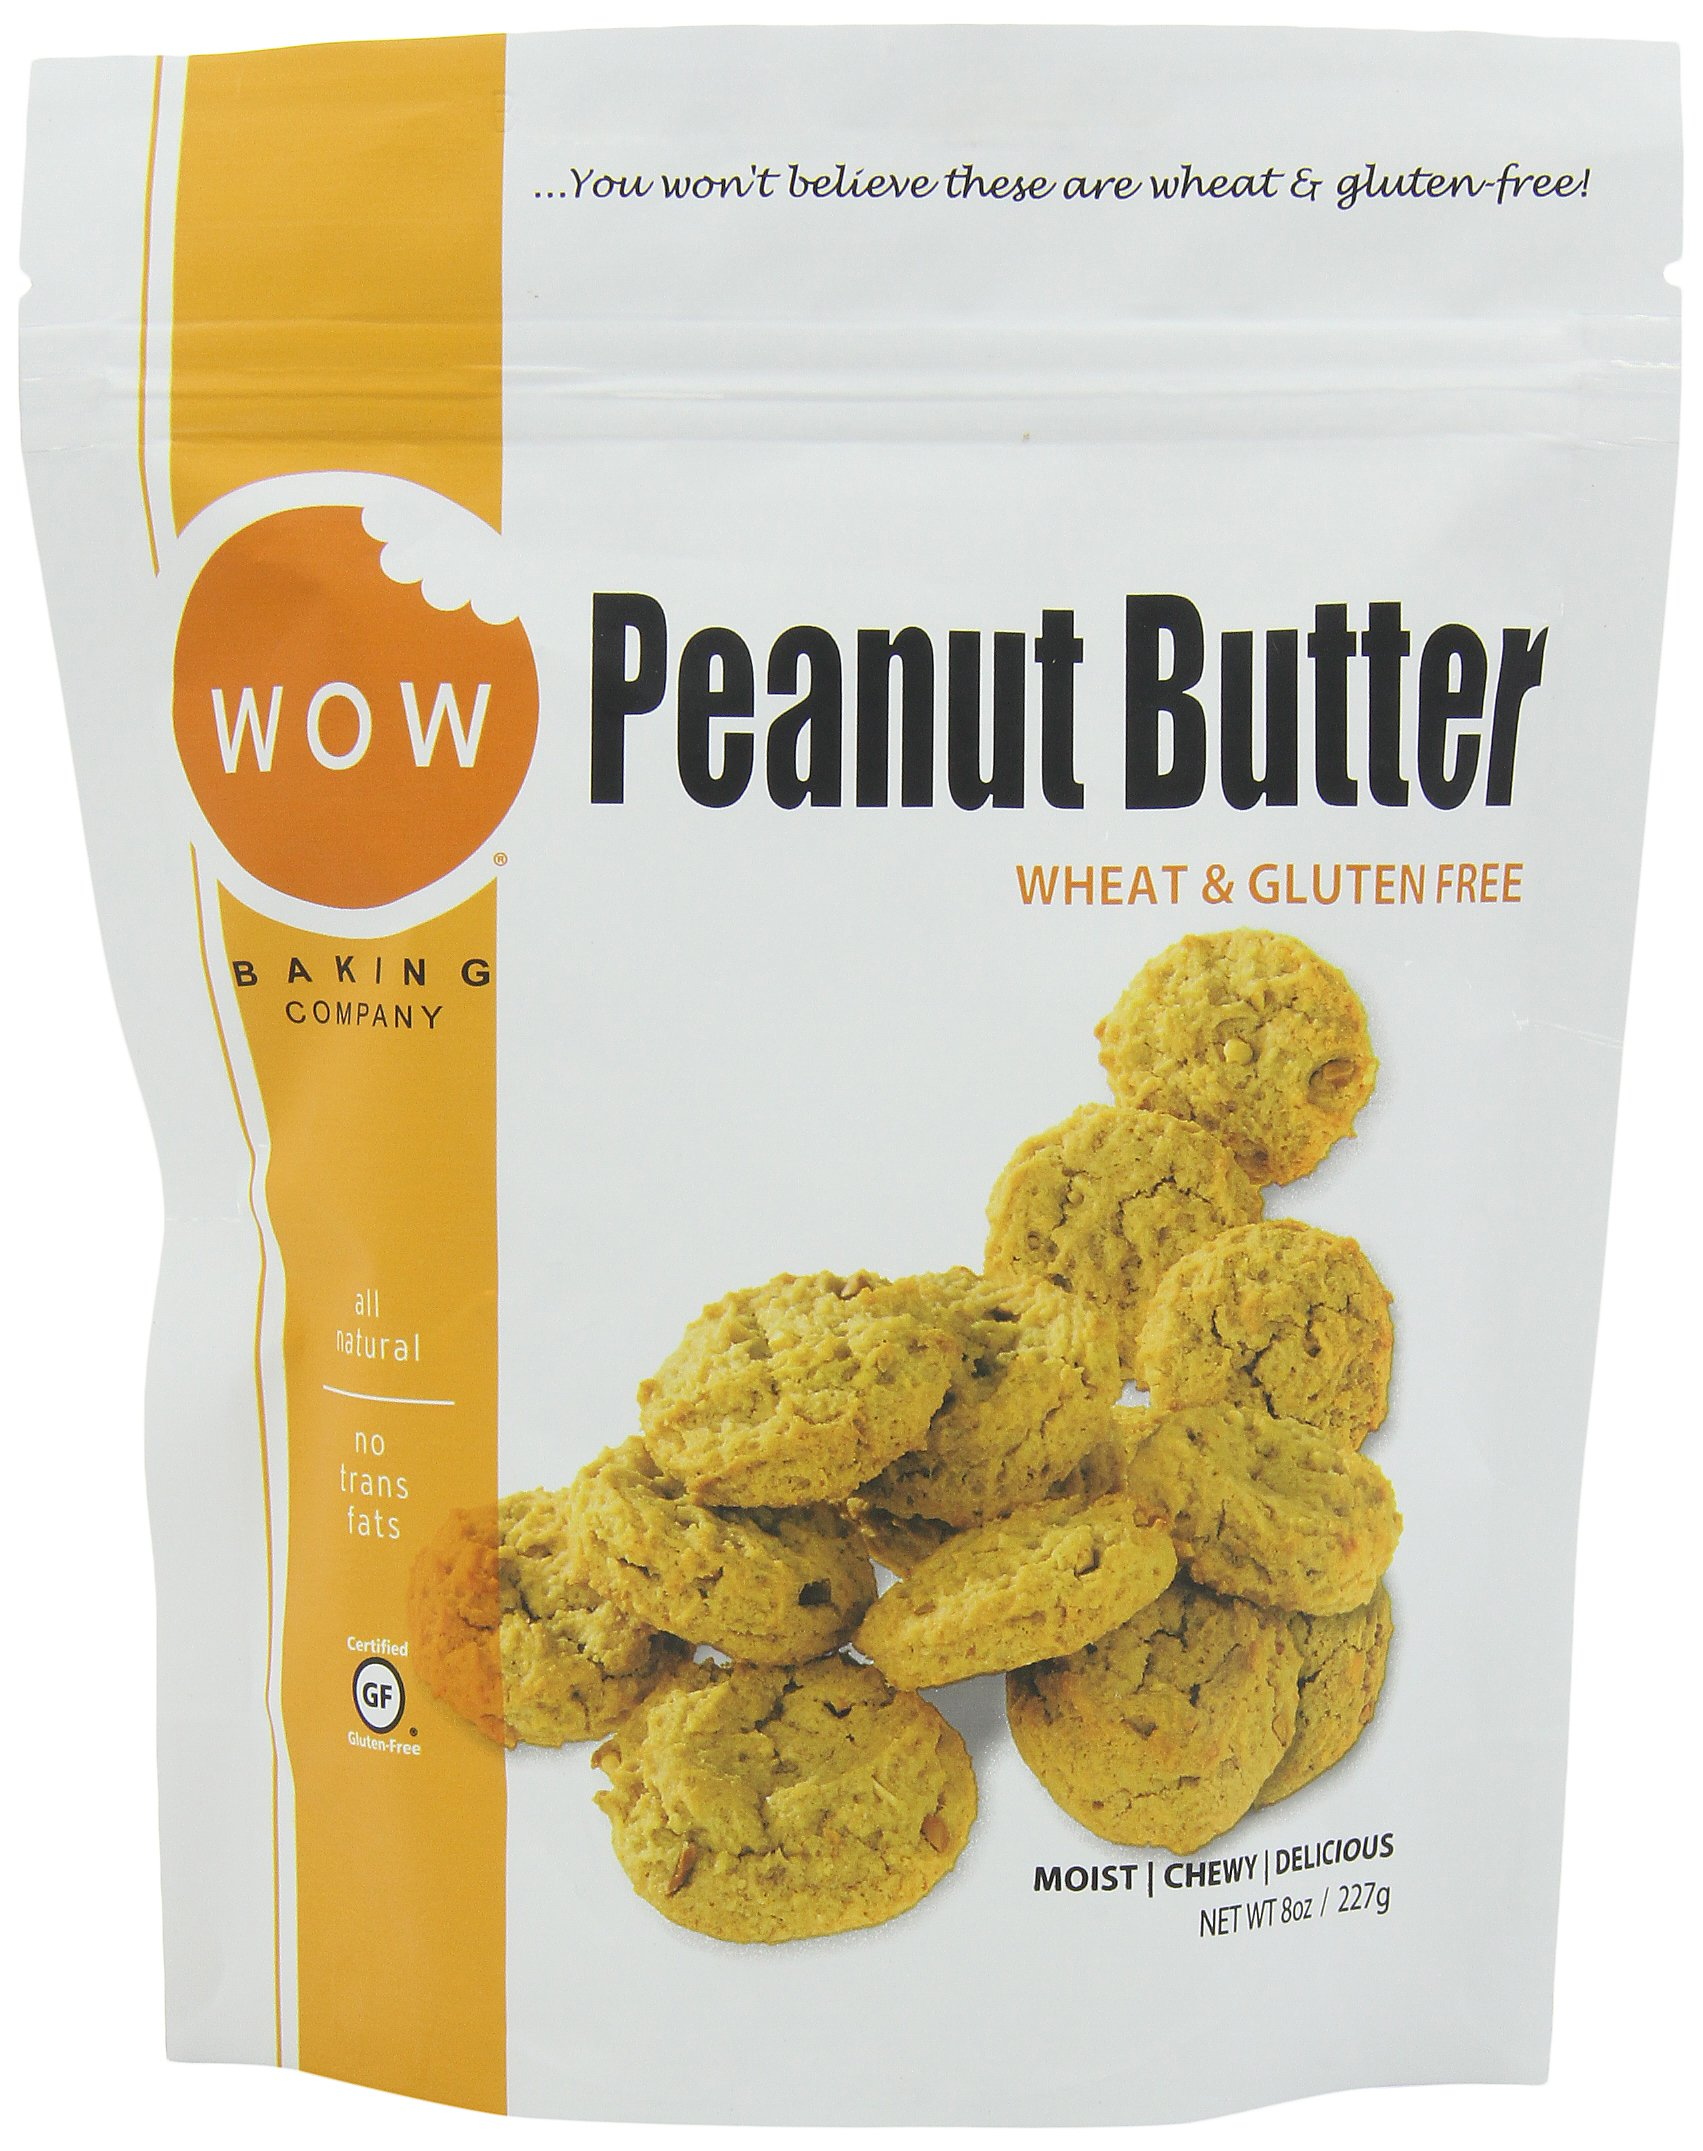 WOW BAKING COMPANY Cookies, Peanut Butter, 8-Ounce (Pack of 6)